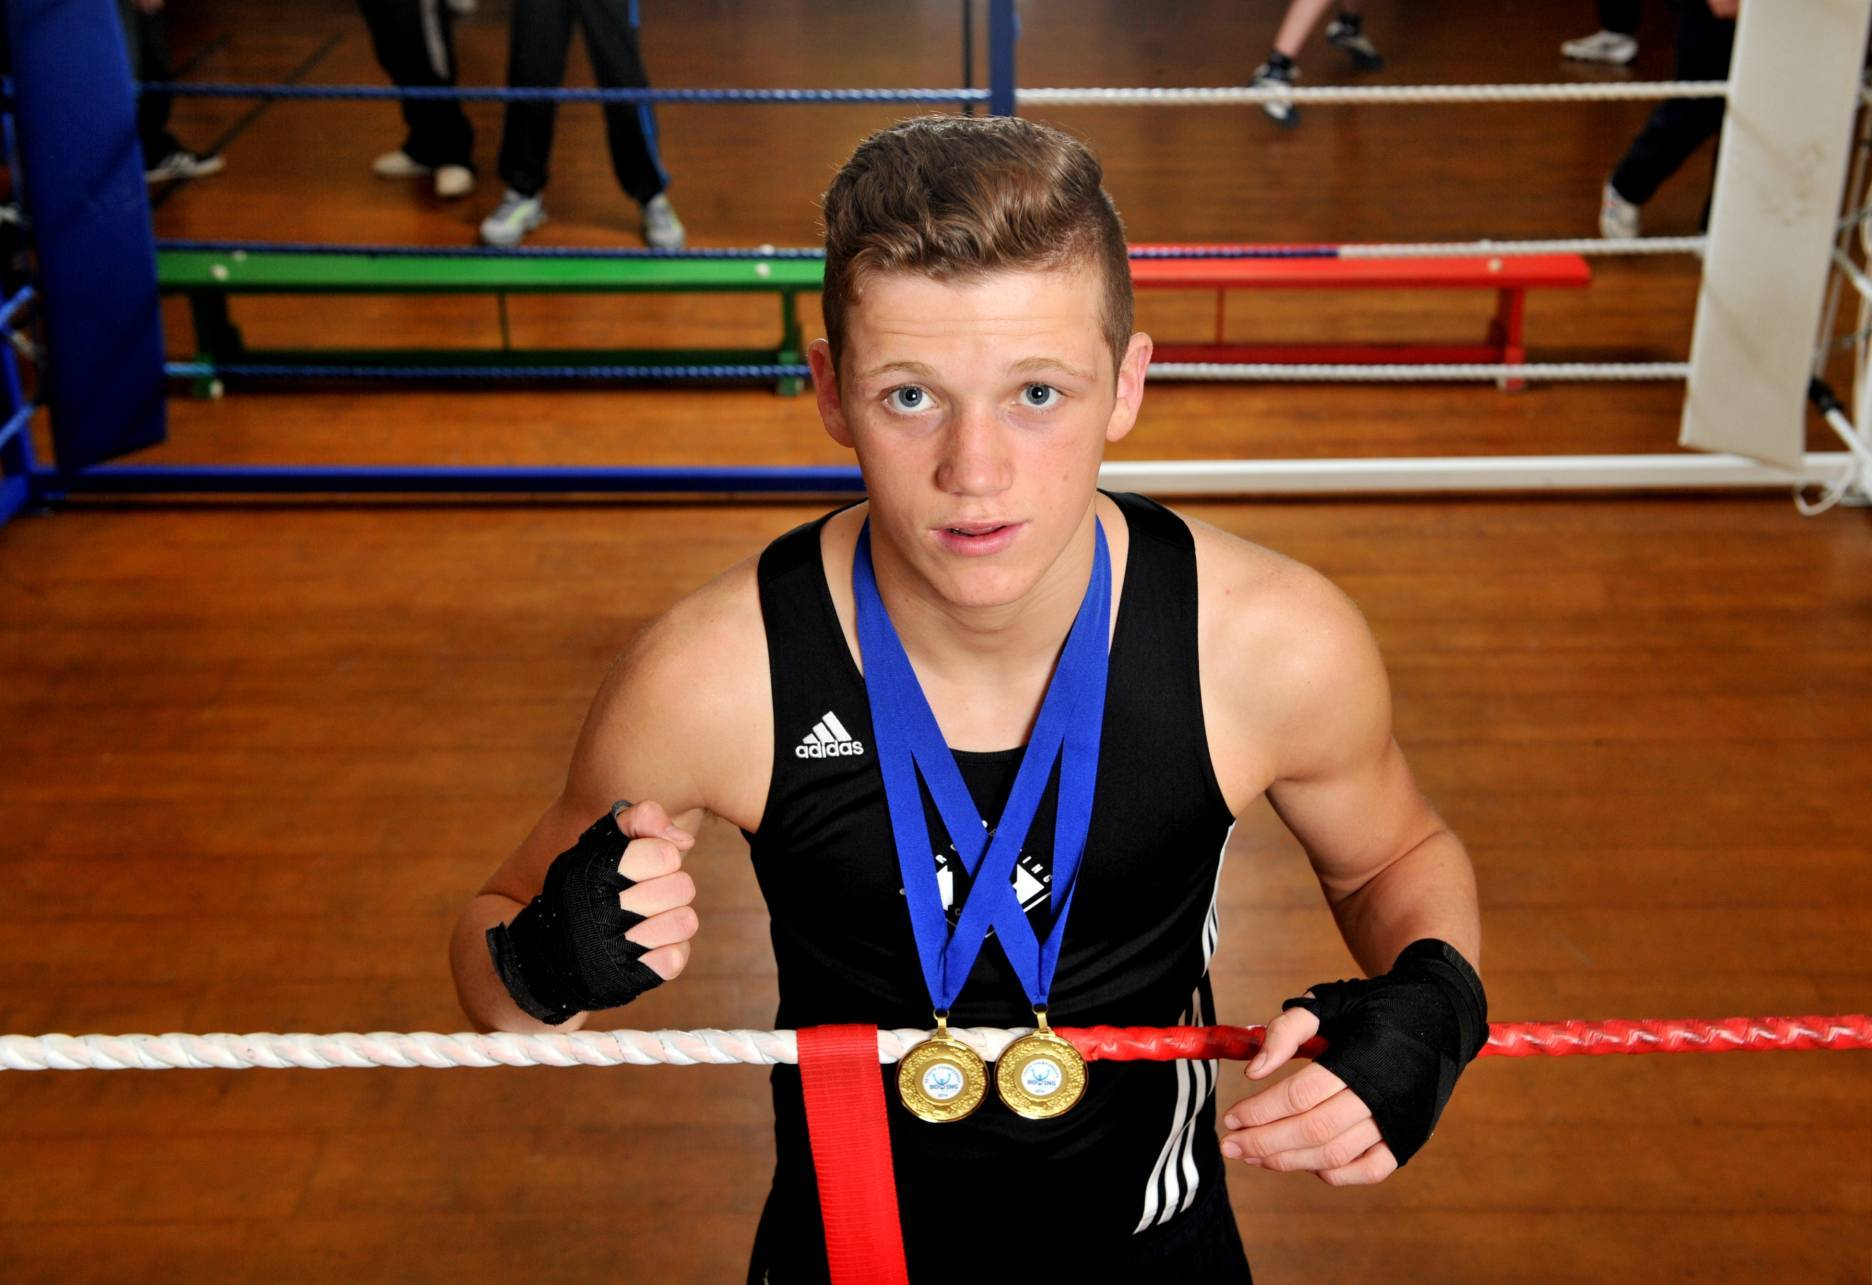 John Docherty won a gold medal at the Commonwealth Youth Games.